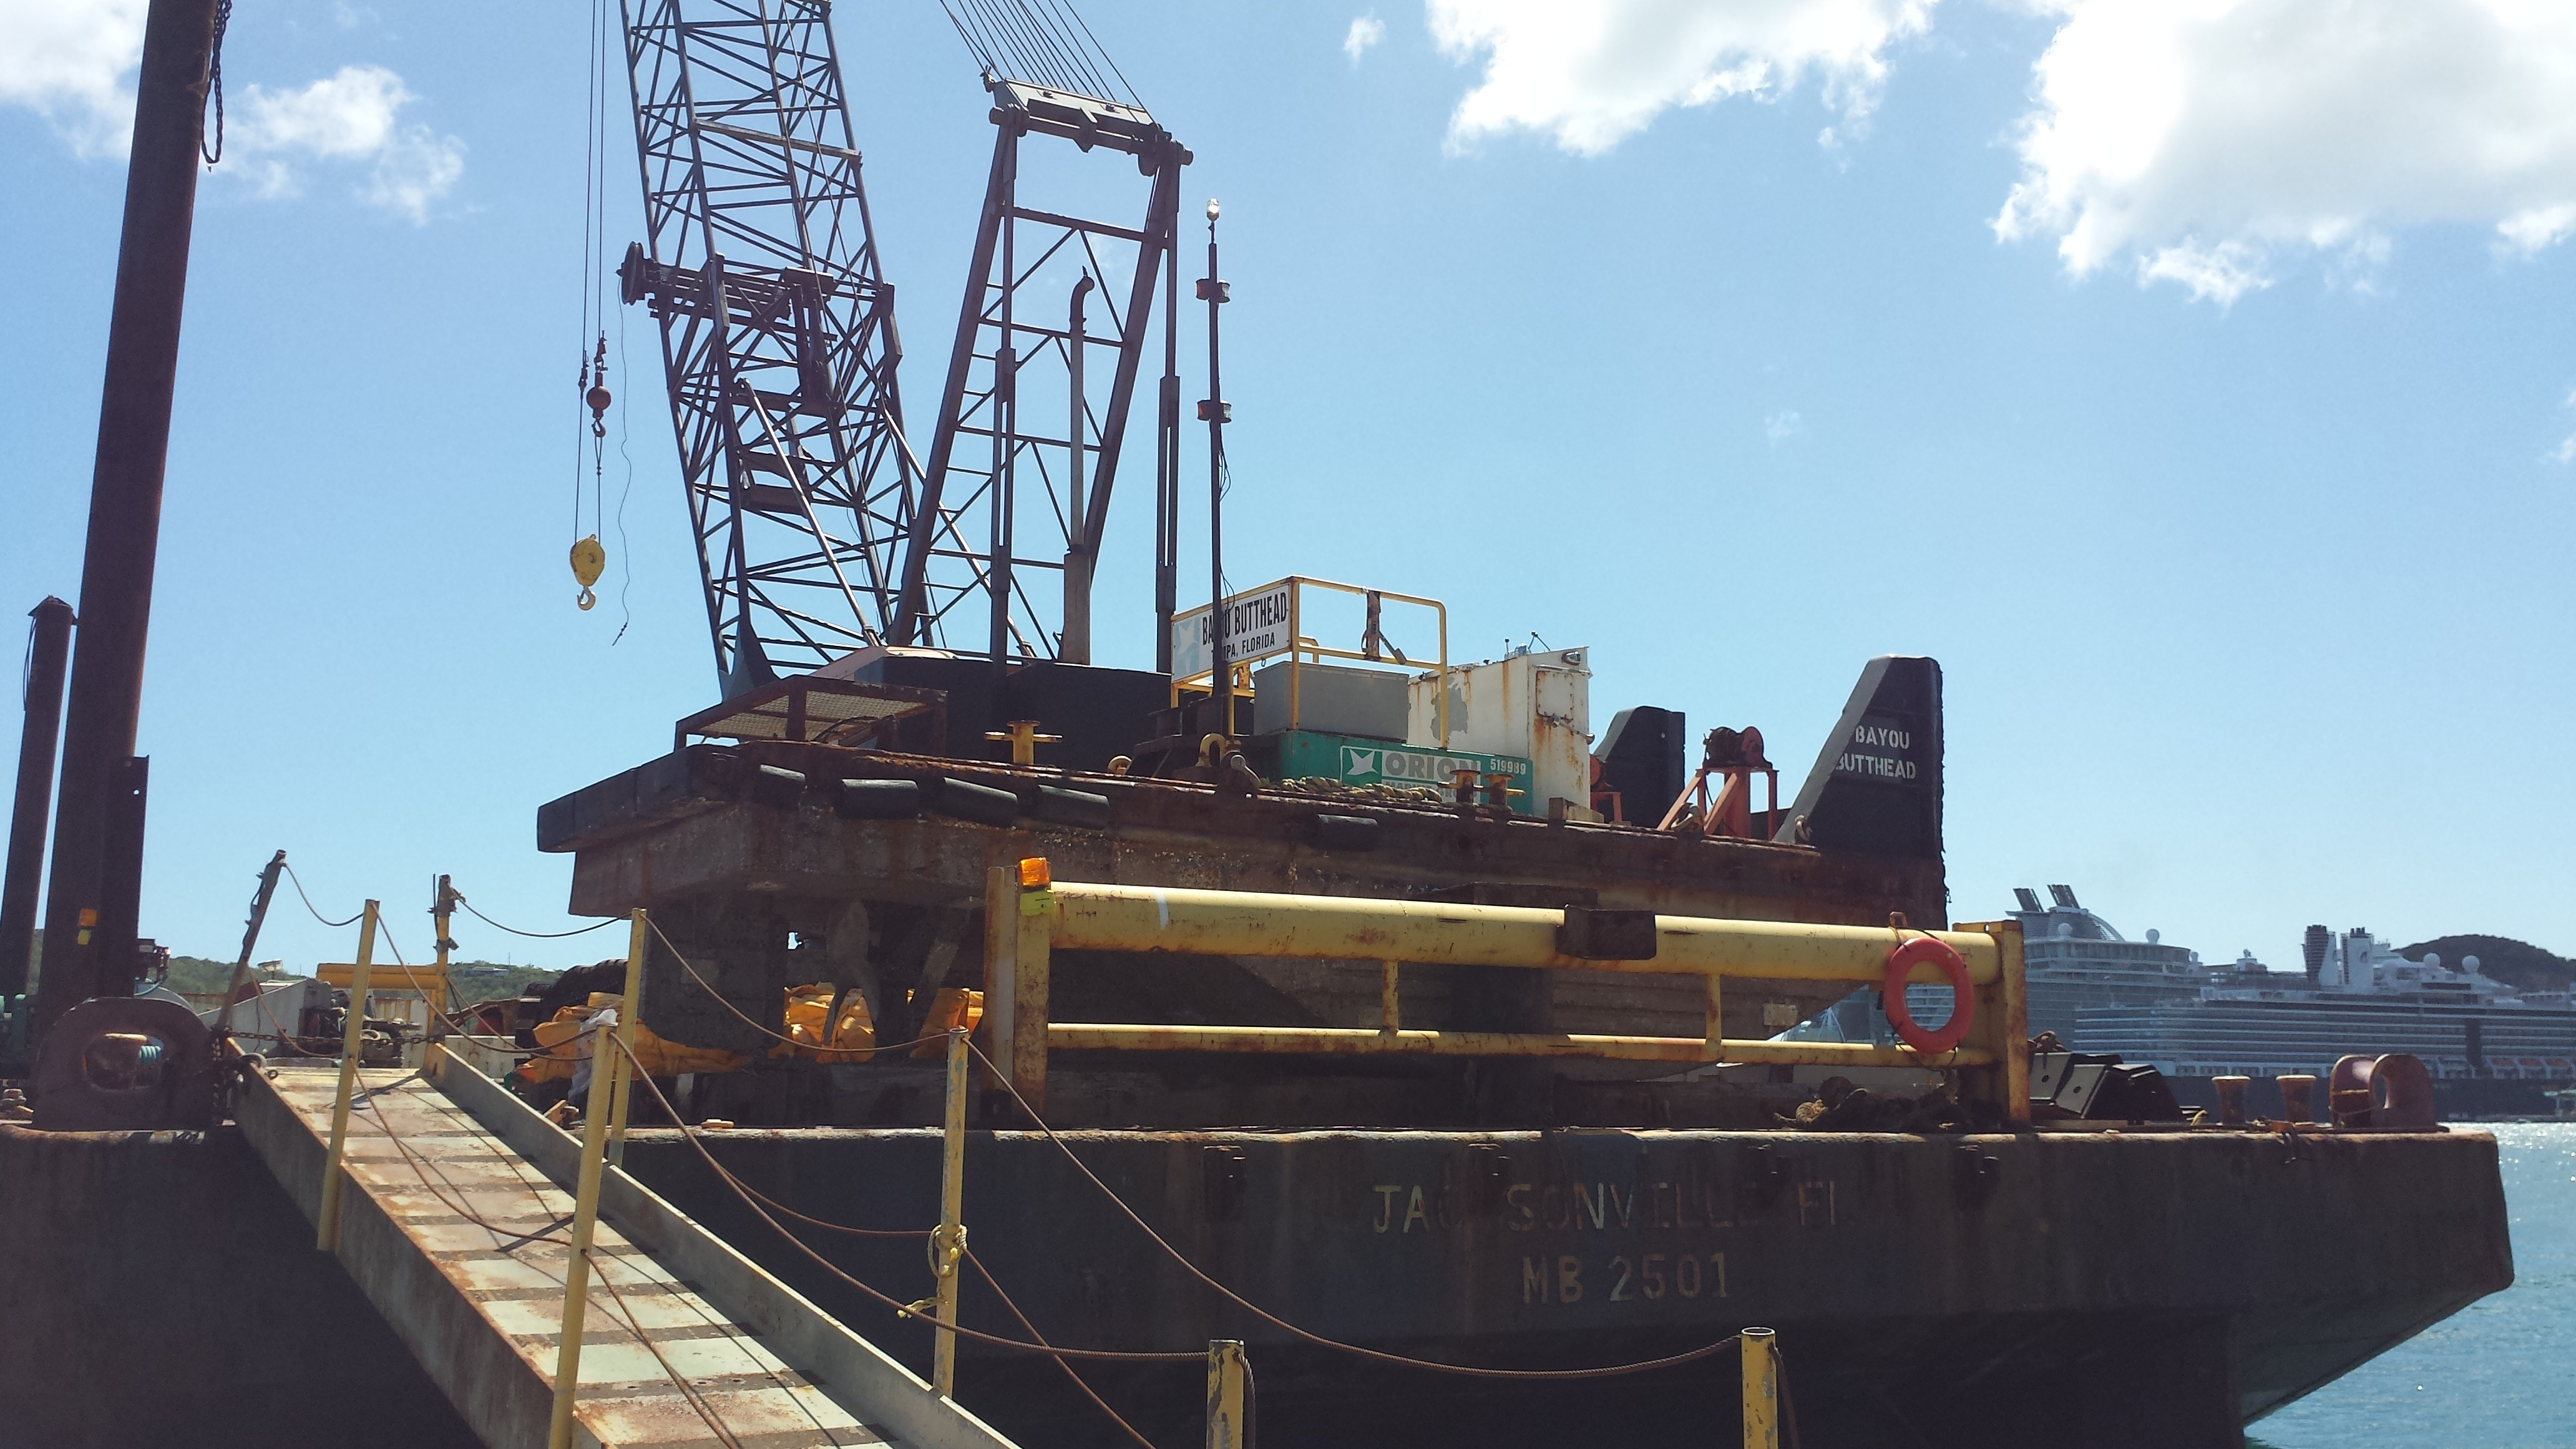 The barge operated by Orion Marine Construction Inc. is stationed in Crown Bay as workers prepare the silt curtain to begin dredging.